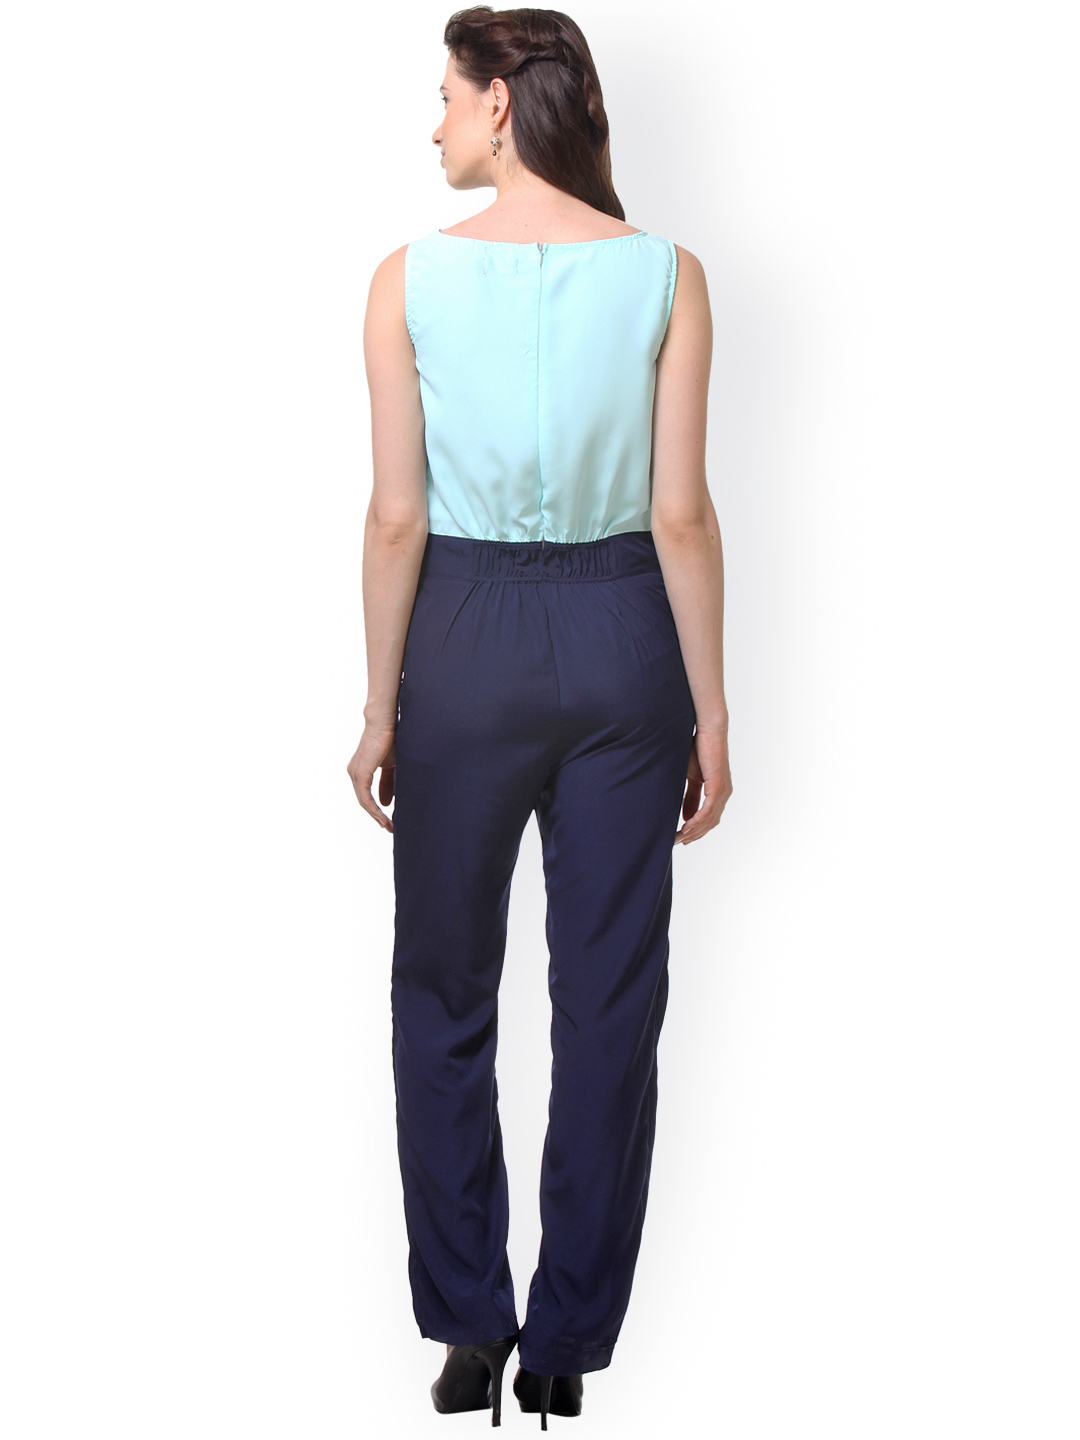 Myntra Kaaryah Blue Jumpsuit 909923 | Buy Myntra At Best Price Online. All Myntra Products With ...